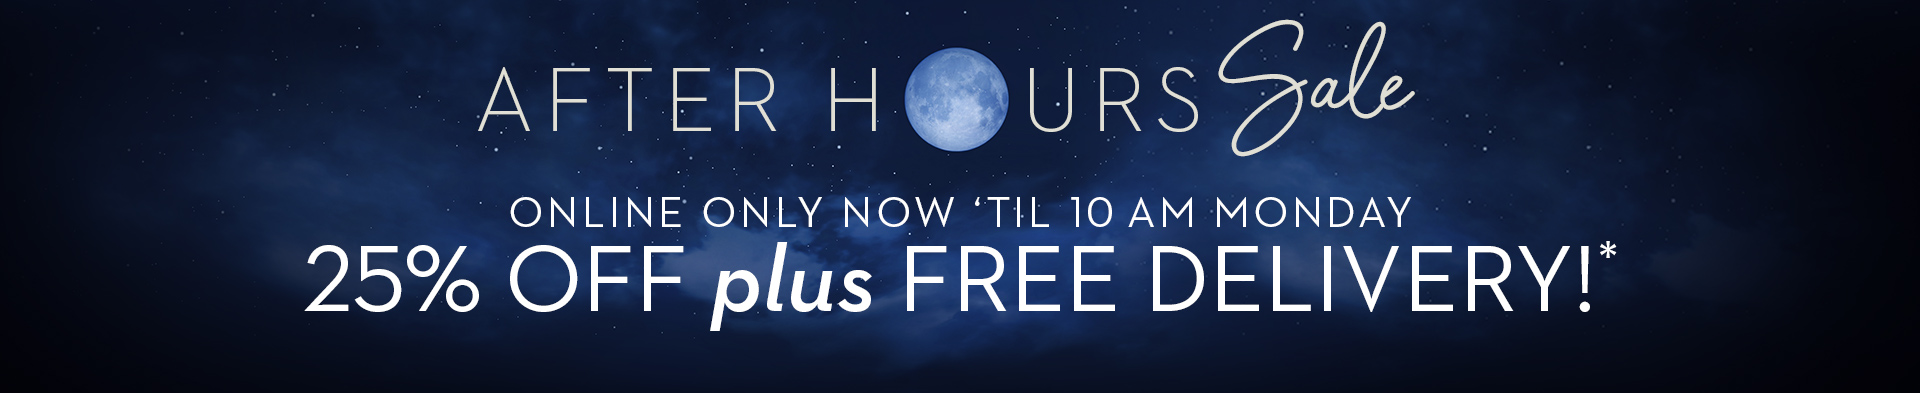 Star After Hours Sale! Online only get 25% off plus free delivery until 10 am Monday!